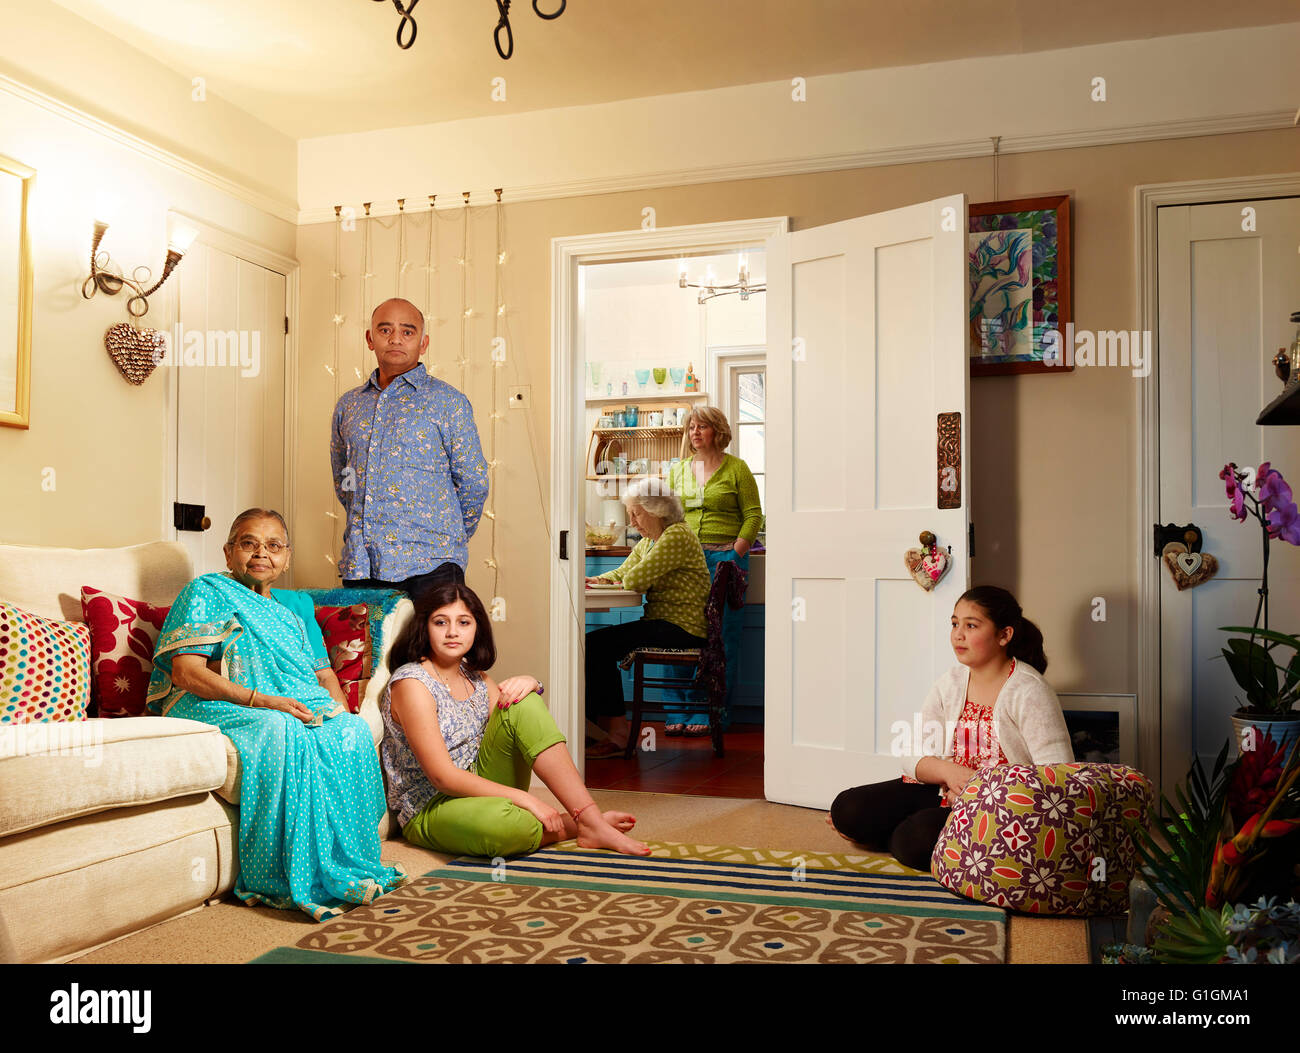 Actor Bhasker Patel and his family at home, UK - Stock Image